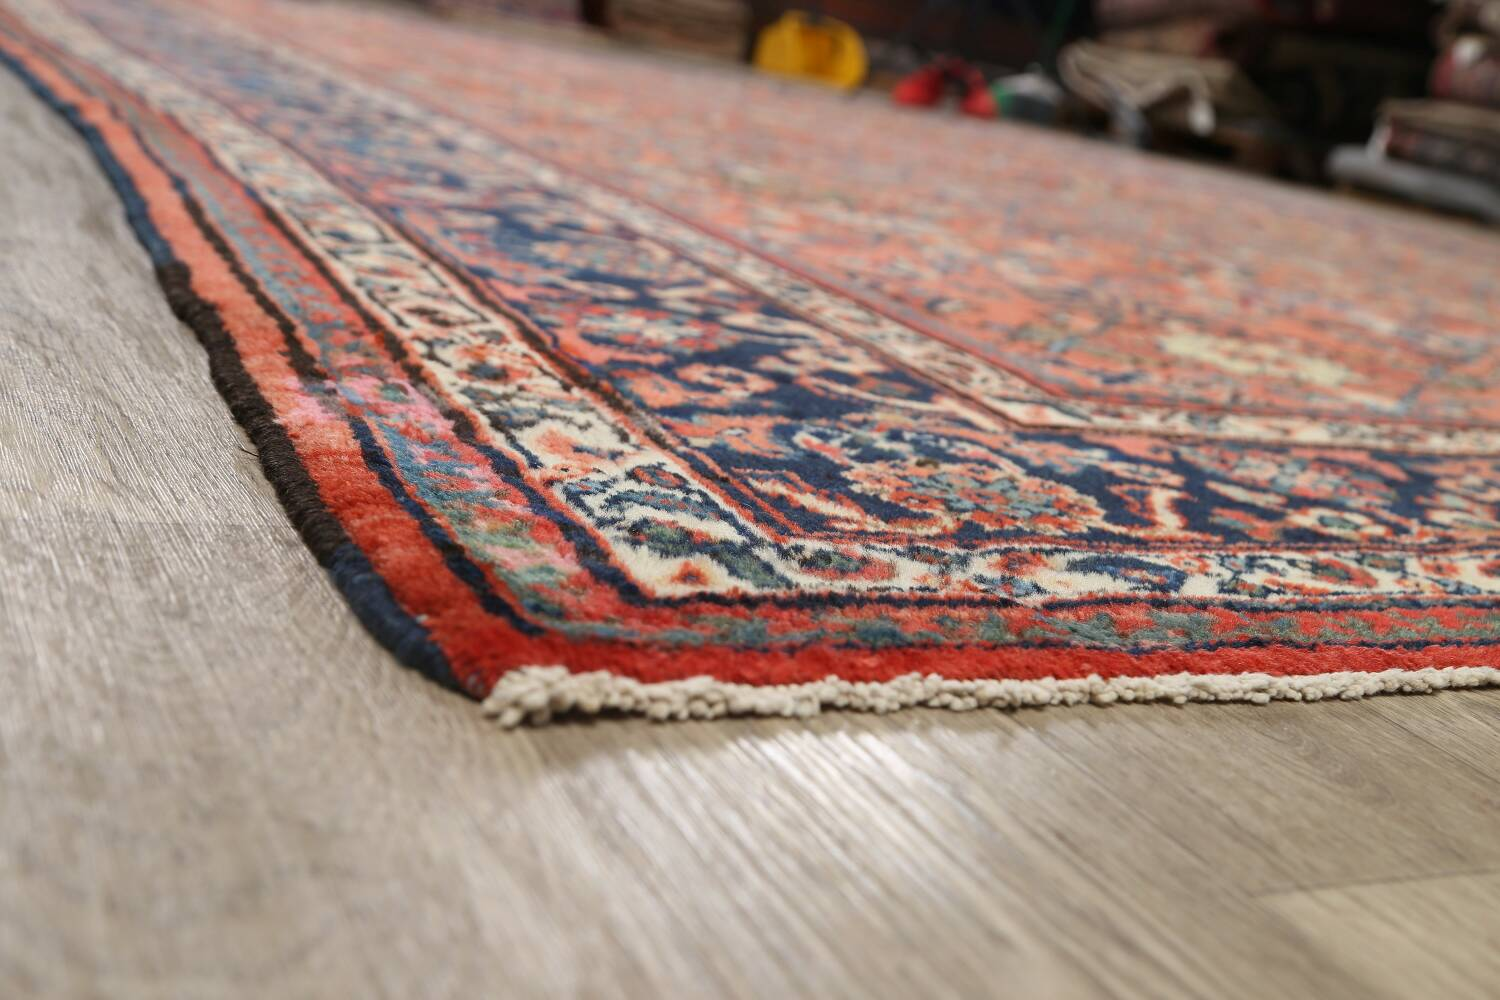 Pre-1900 Antique Vegetable Dye Sultanabad Persian Area Rug 10x14 image 6